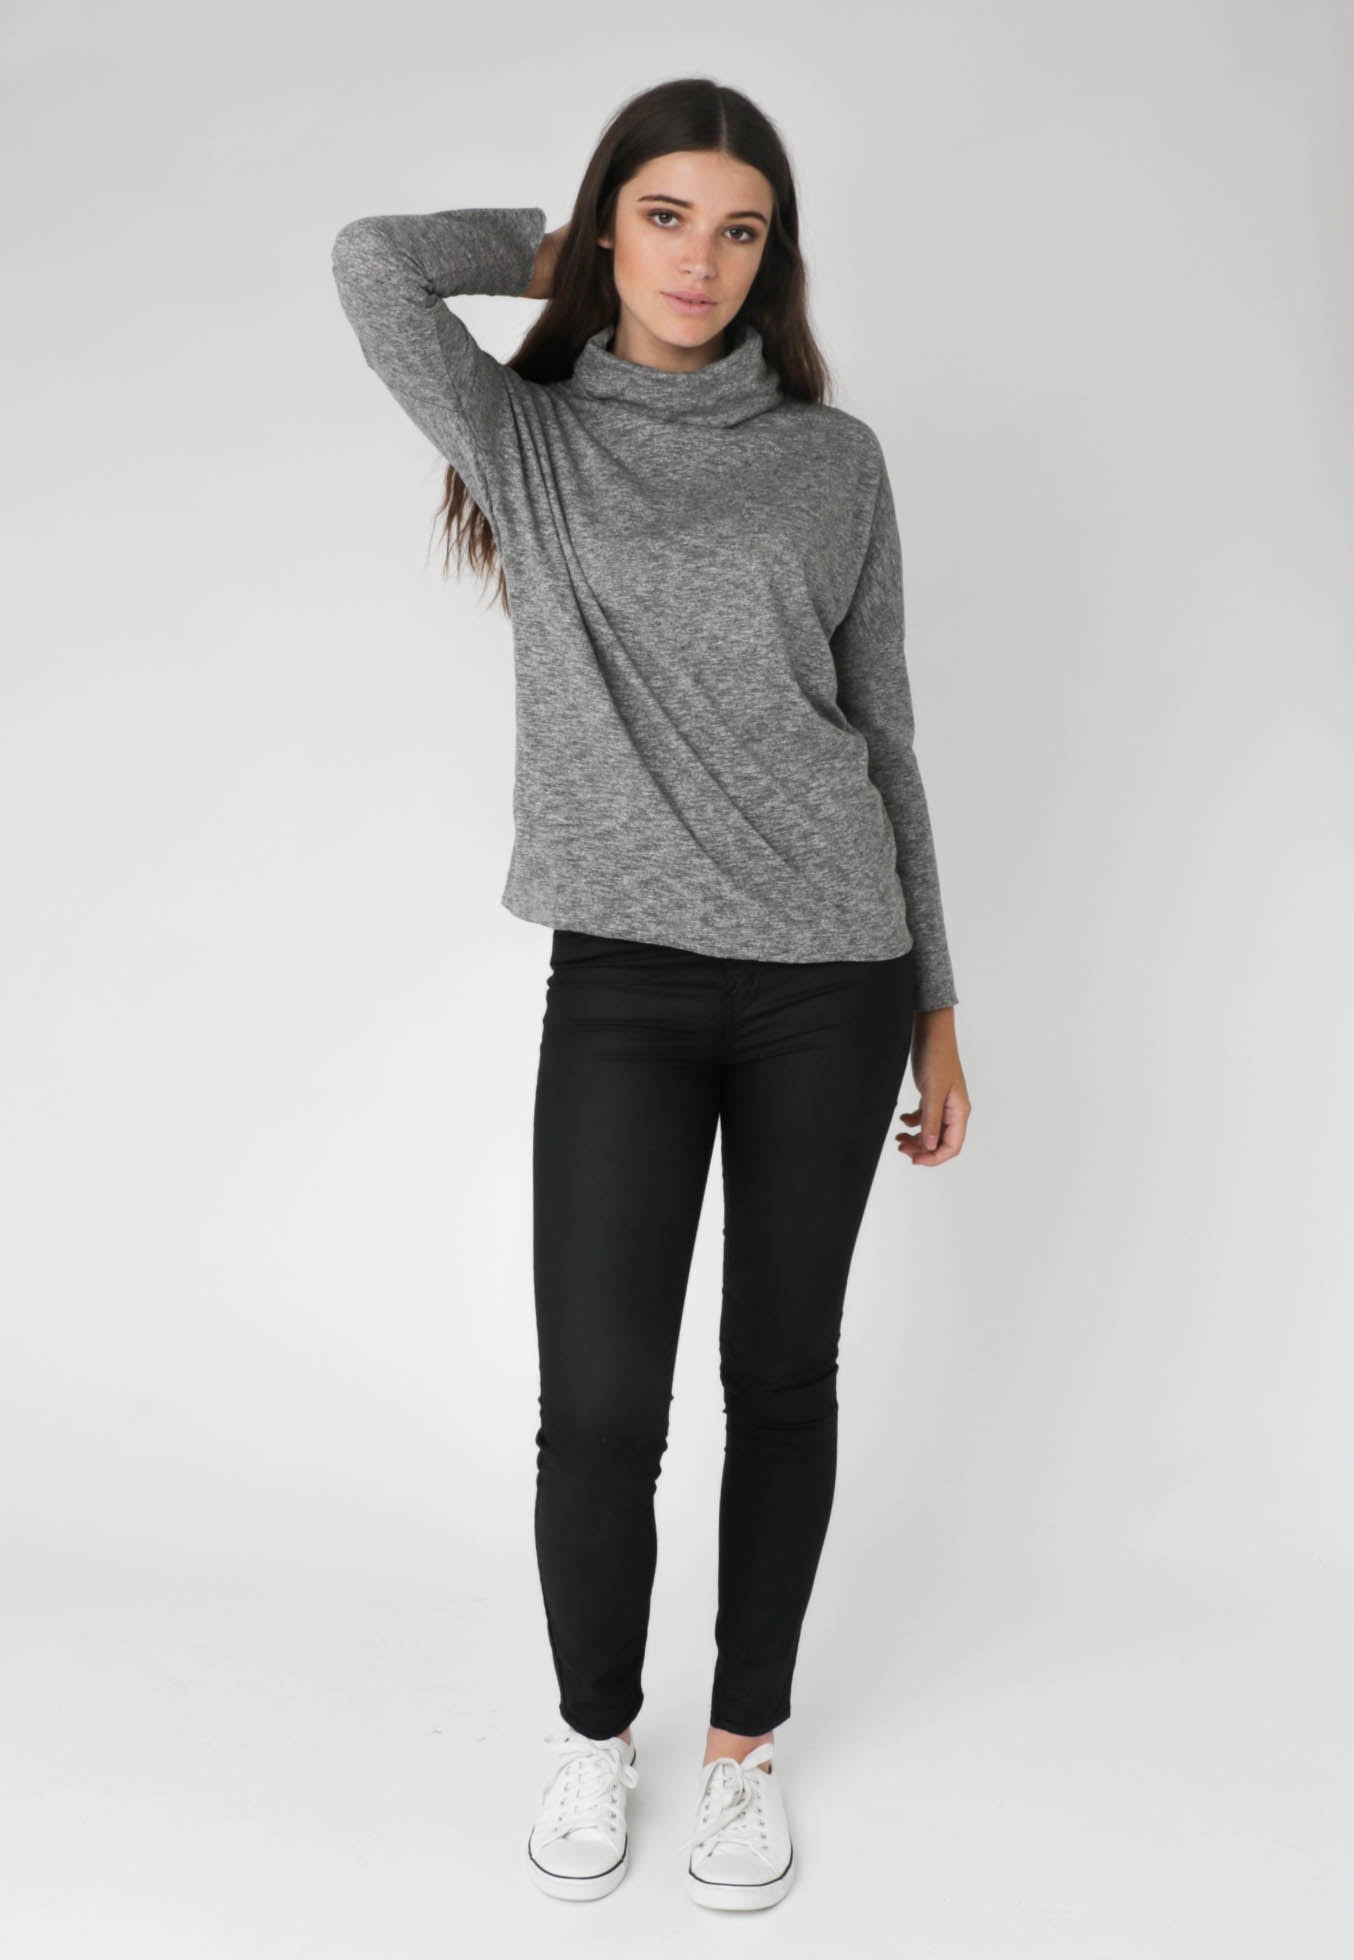 All About Eve - Tee Mythical L/S - Grey Marle